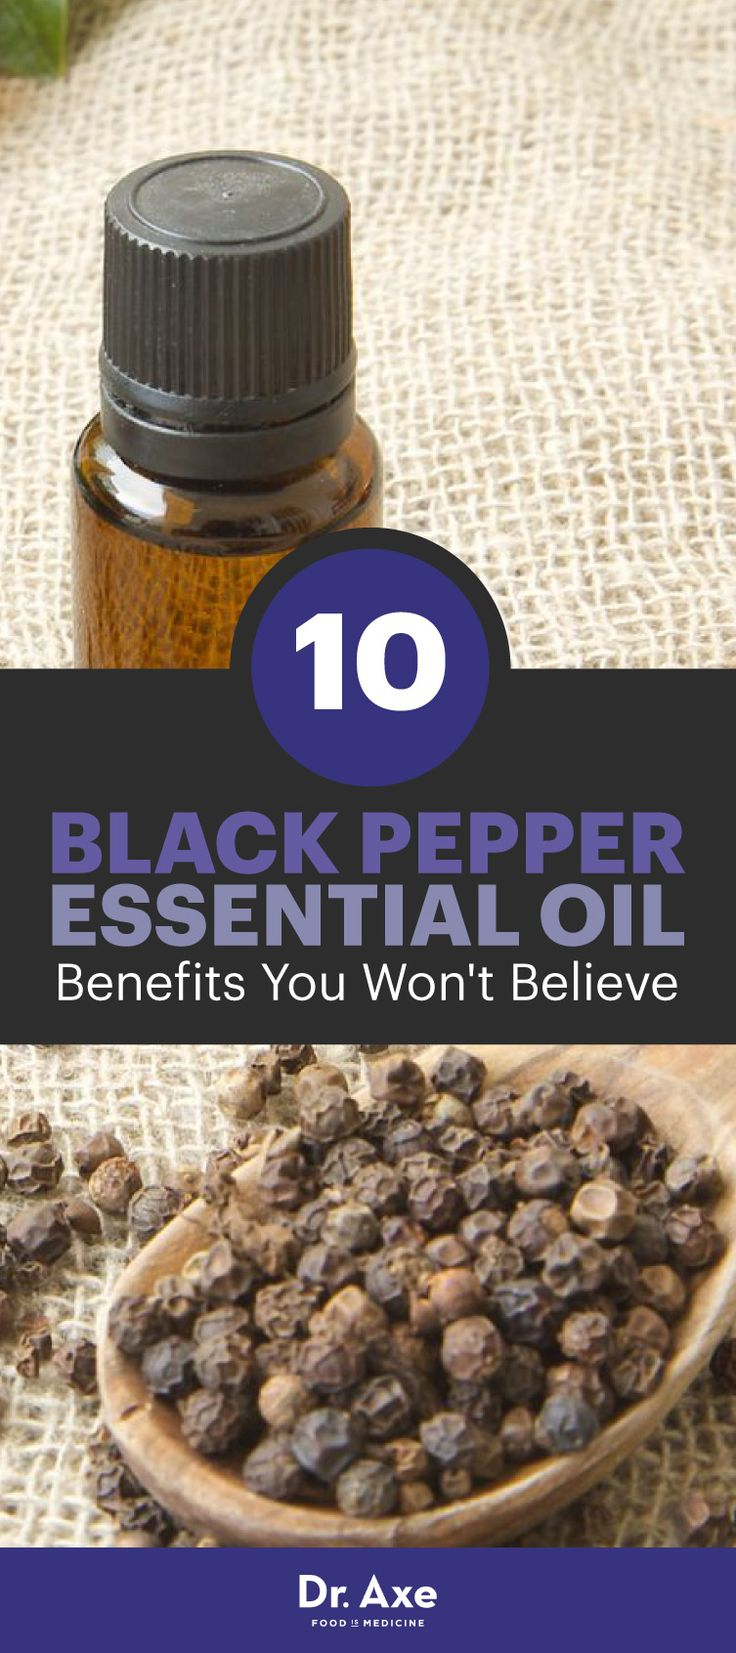 Black pepper essential oils benefits include relieving aches and pains, lowering cholesterol, detoxing the body and enhancing circulation, among many more.